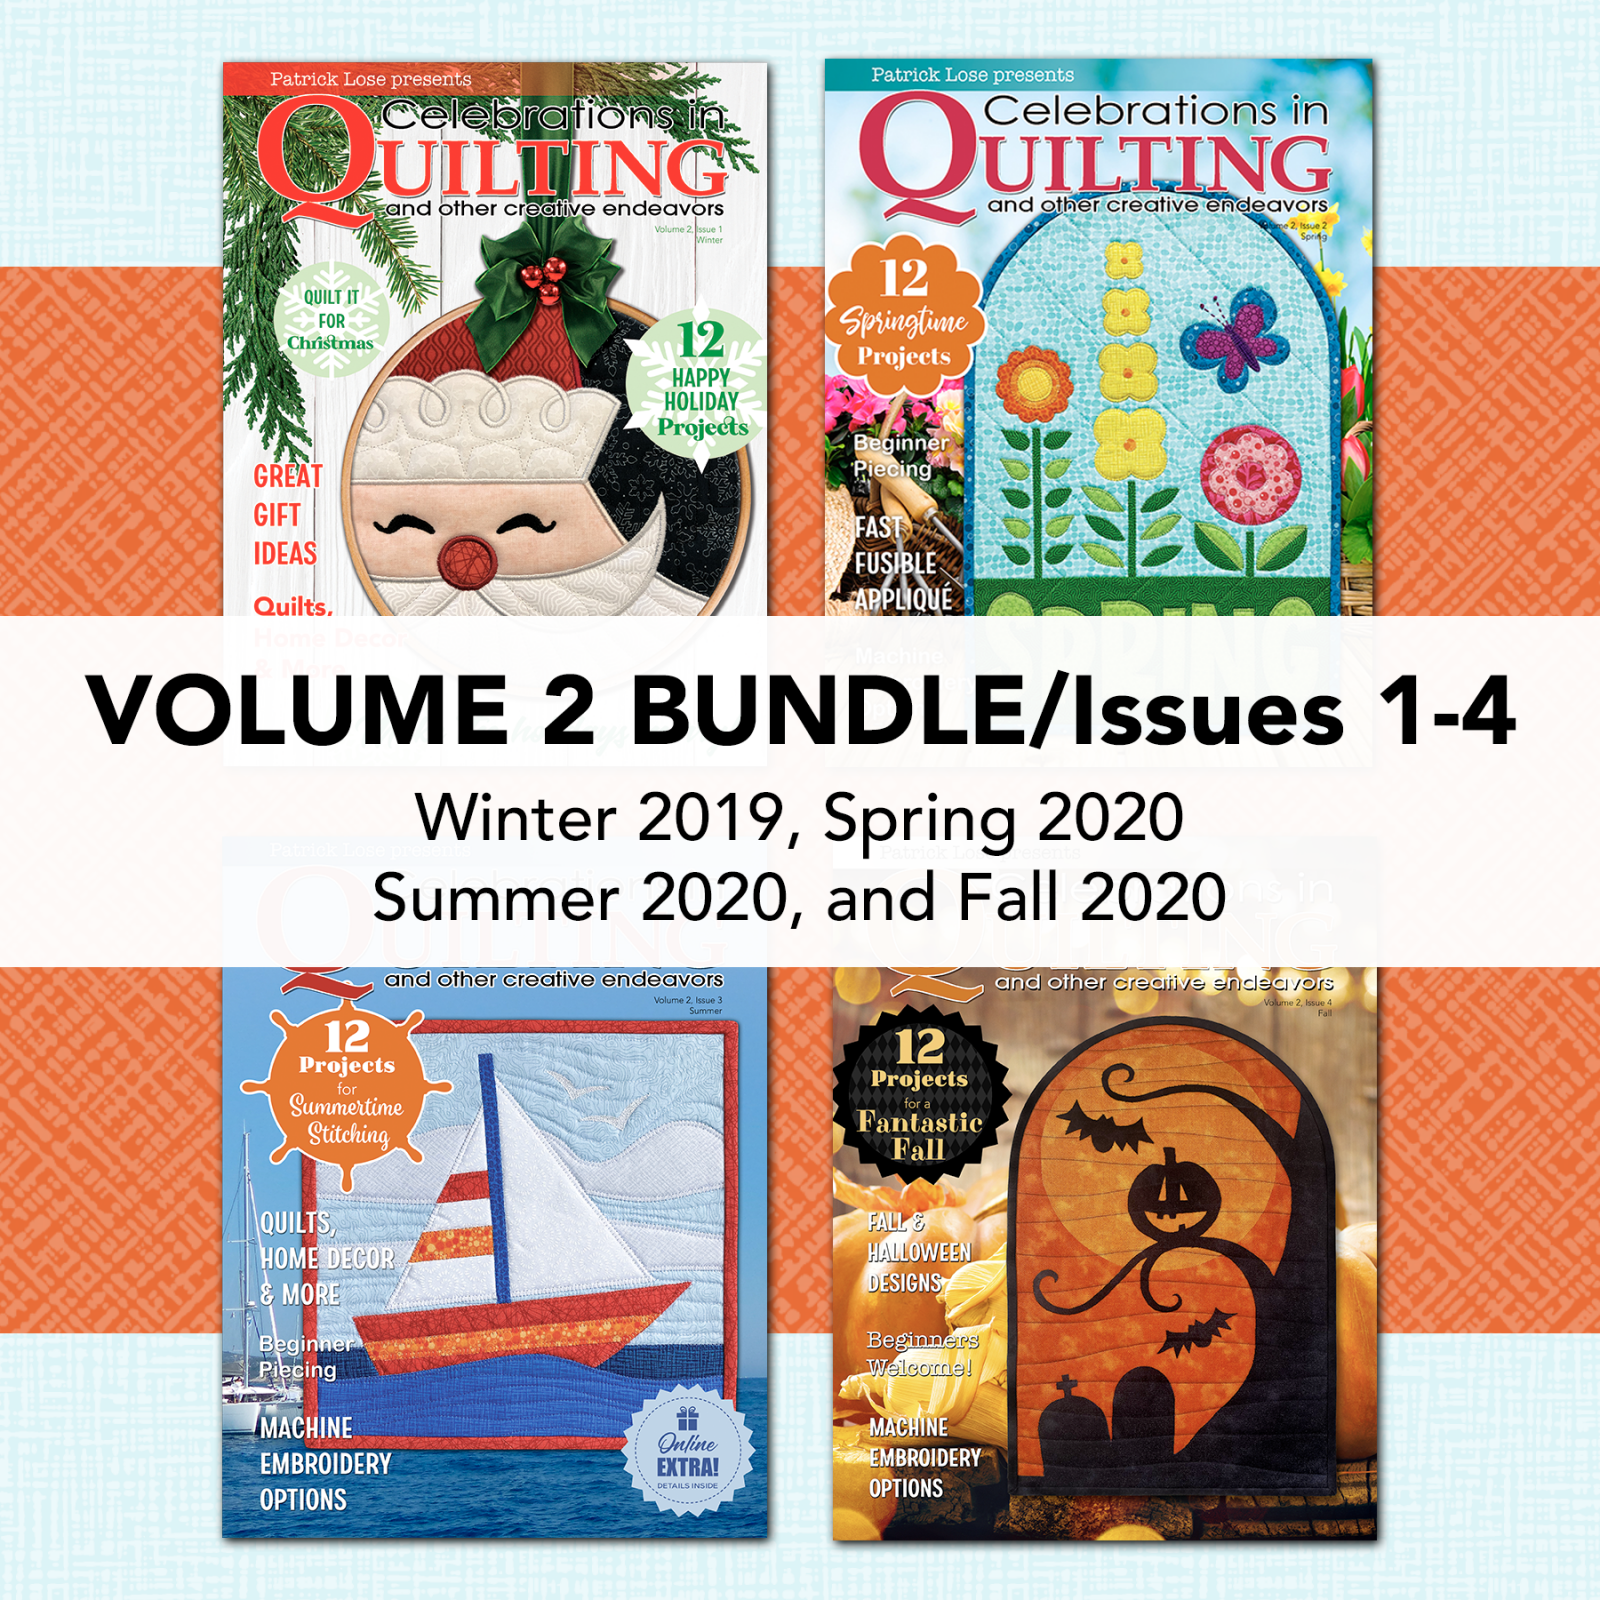 Celebrations in Quilting Volume 2 2019/2020 COMPLETE BUNDLE